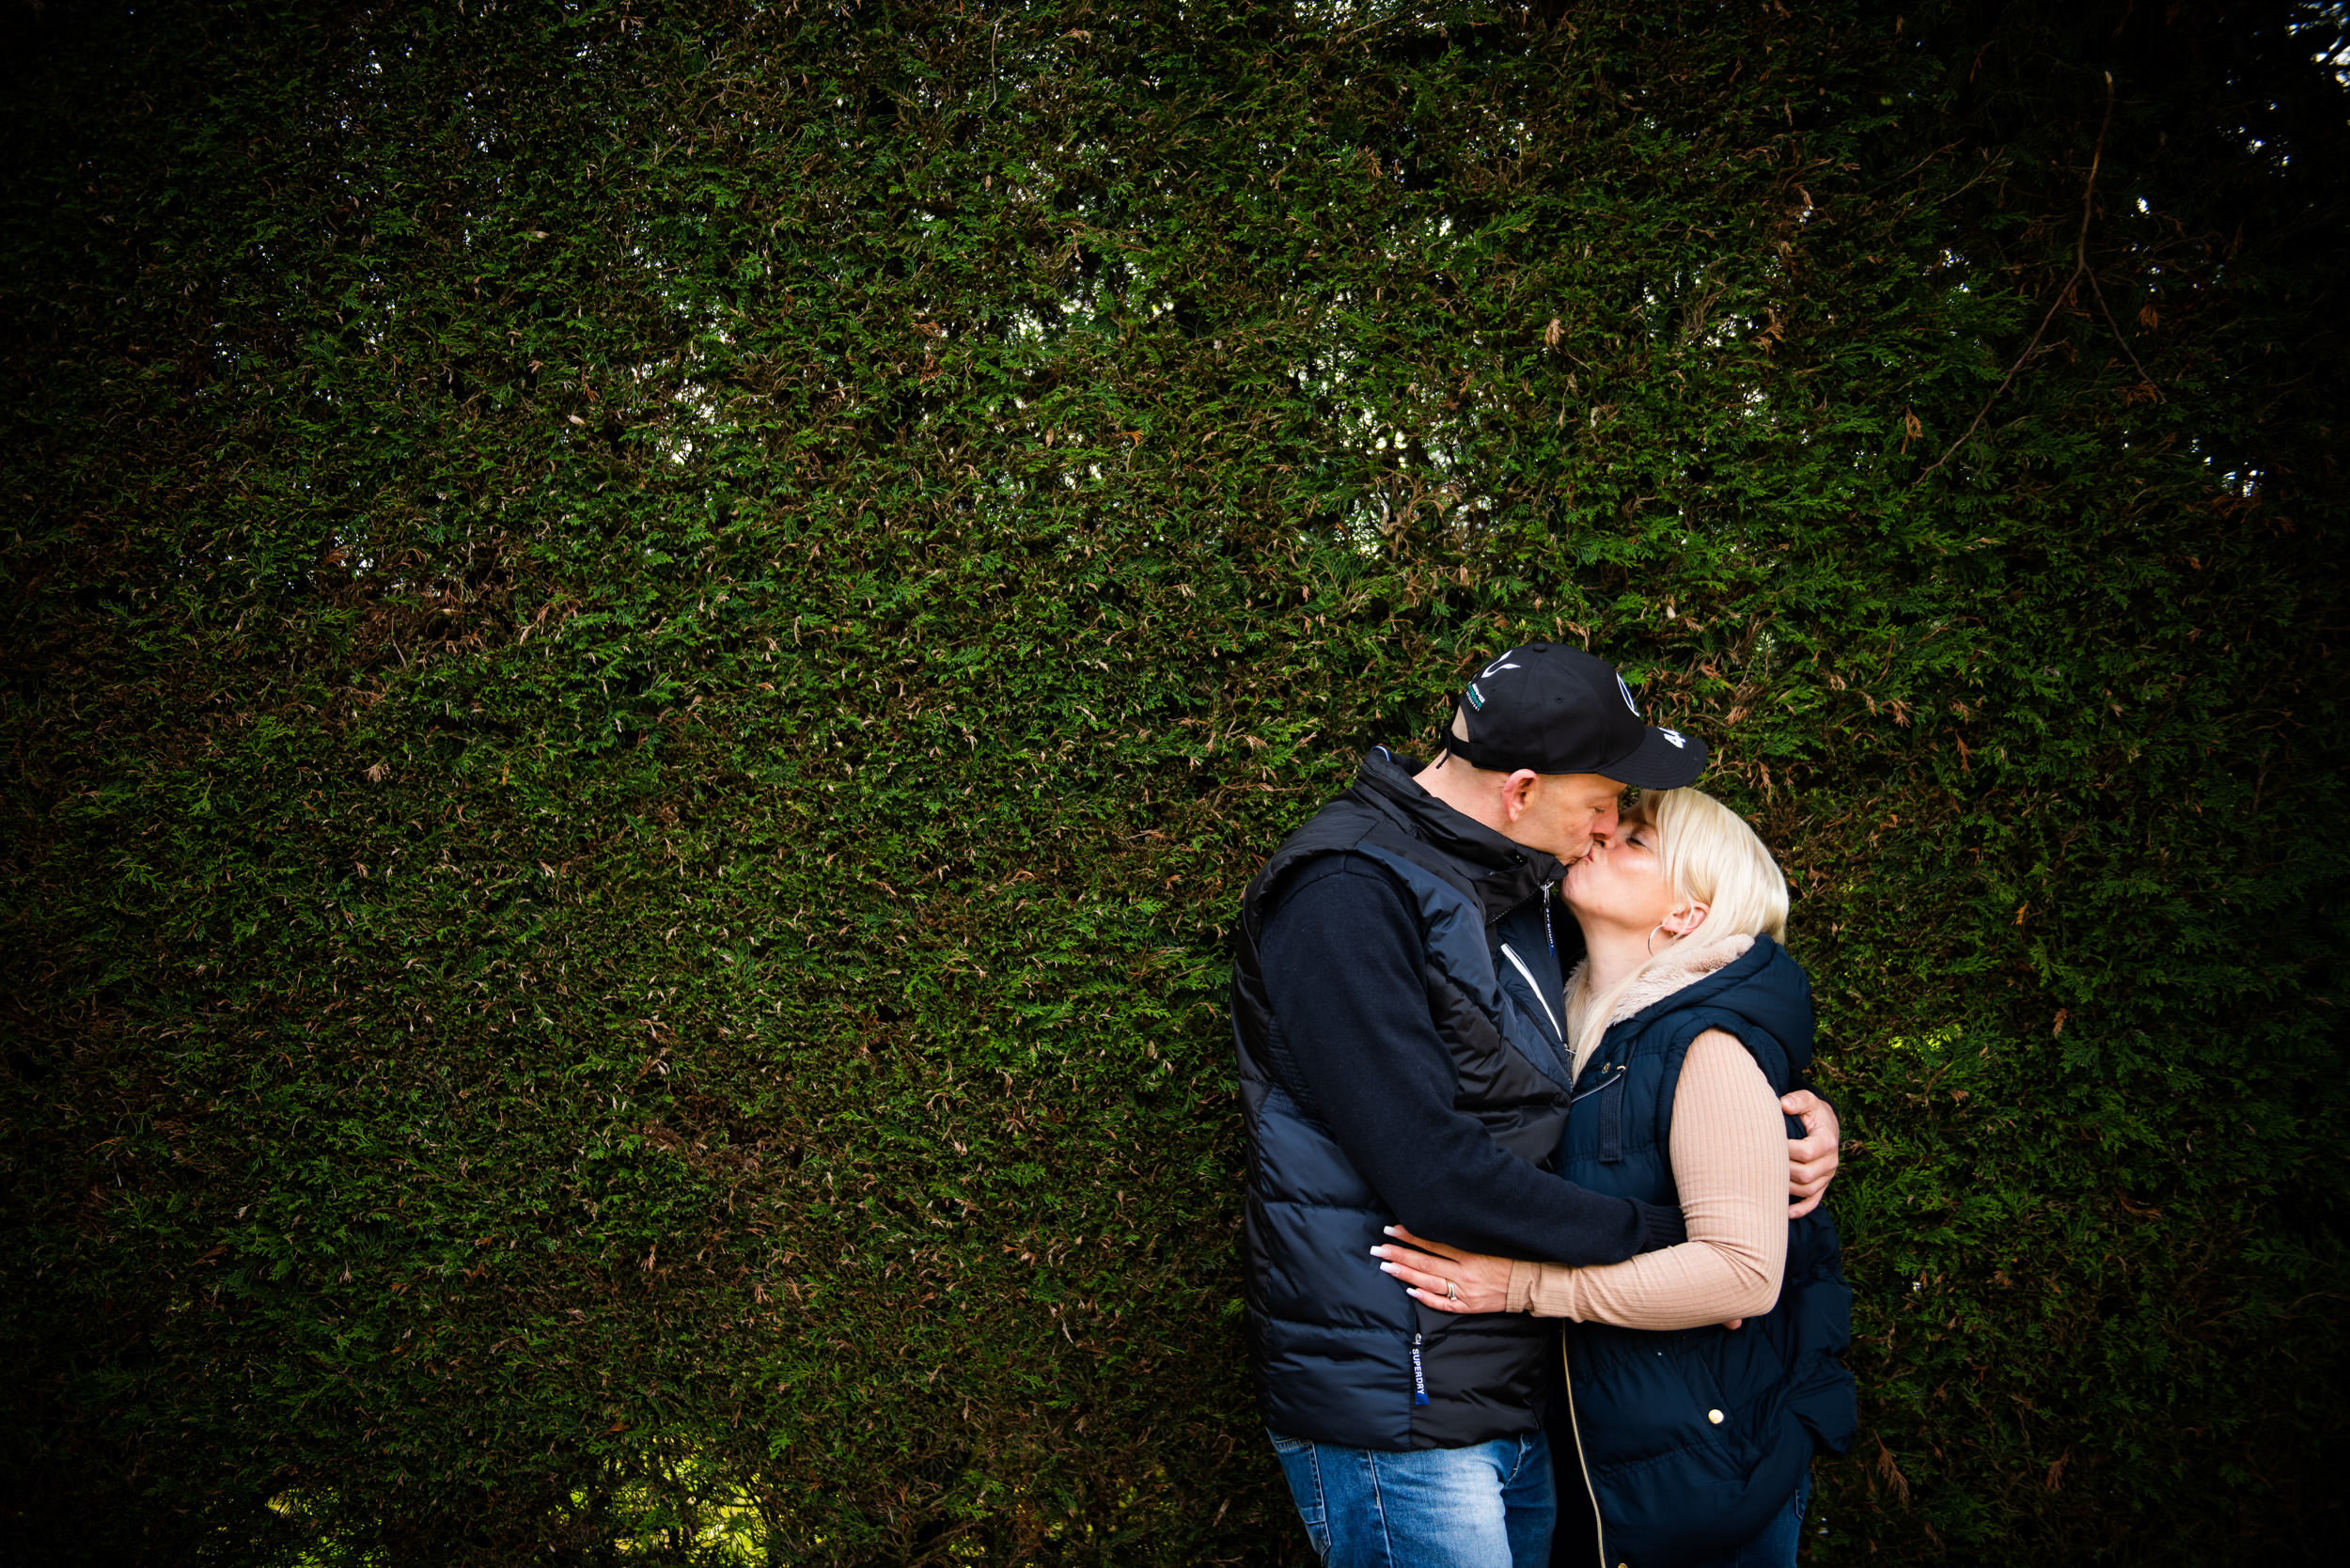 In love couple kissing in front of a bush